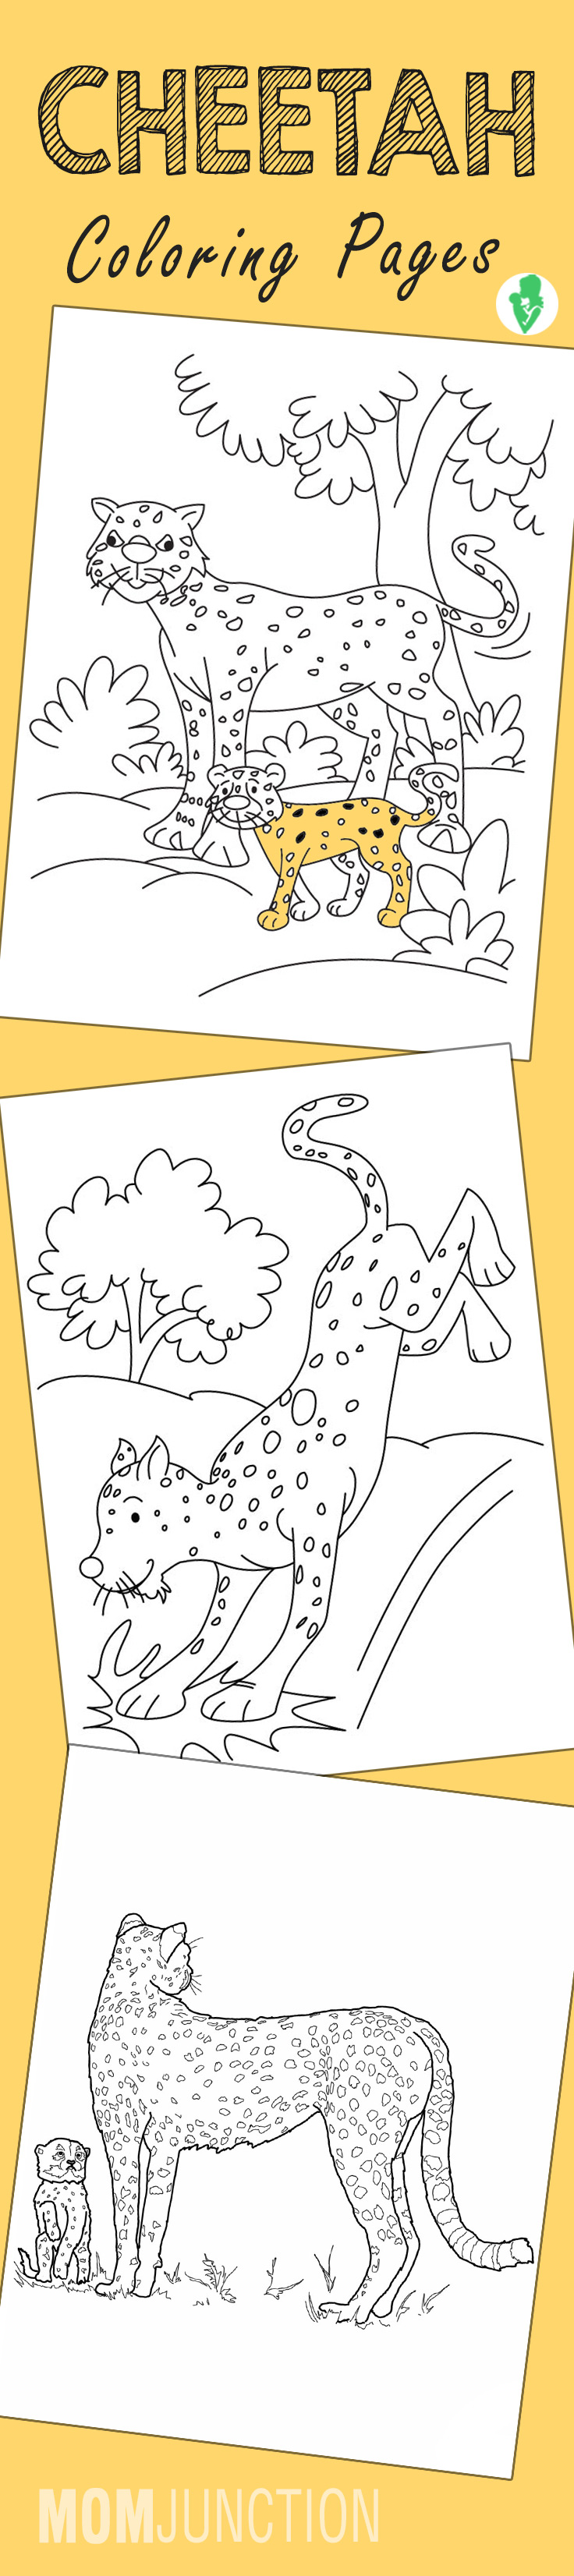 Free printable coloring pages cheetah - Free Printable Coloring Pages Cheetah 49